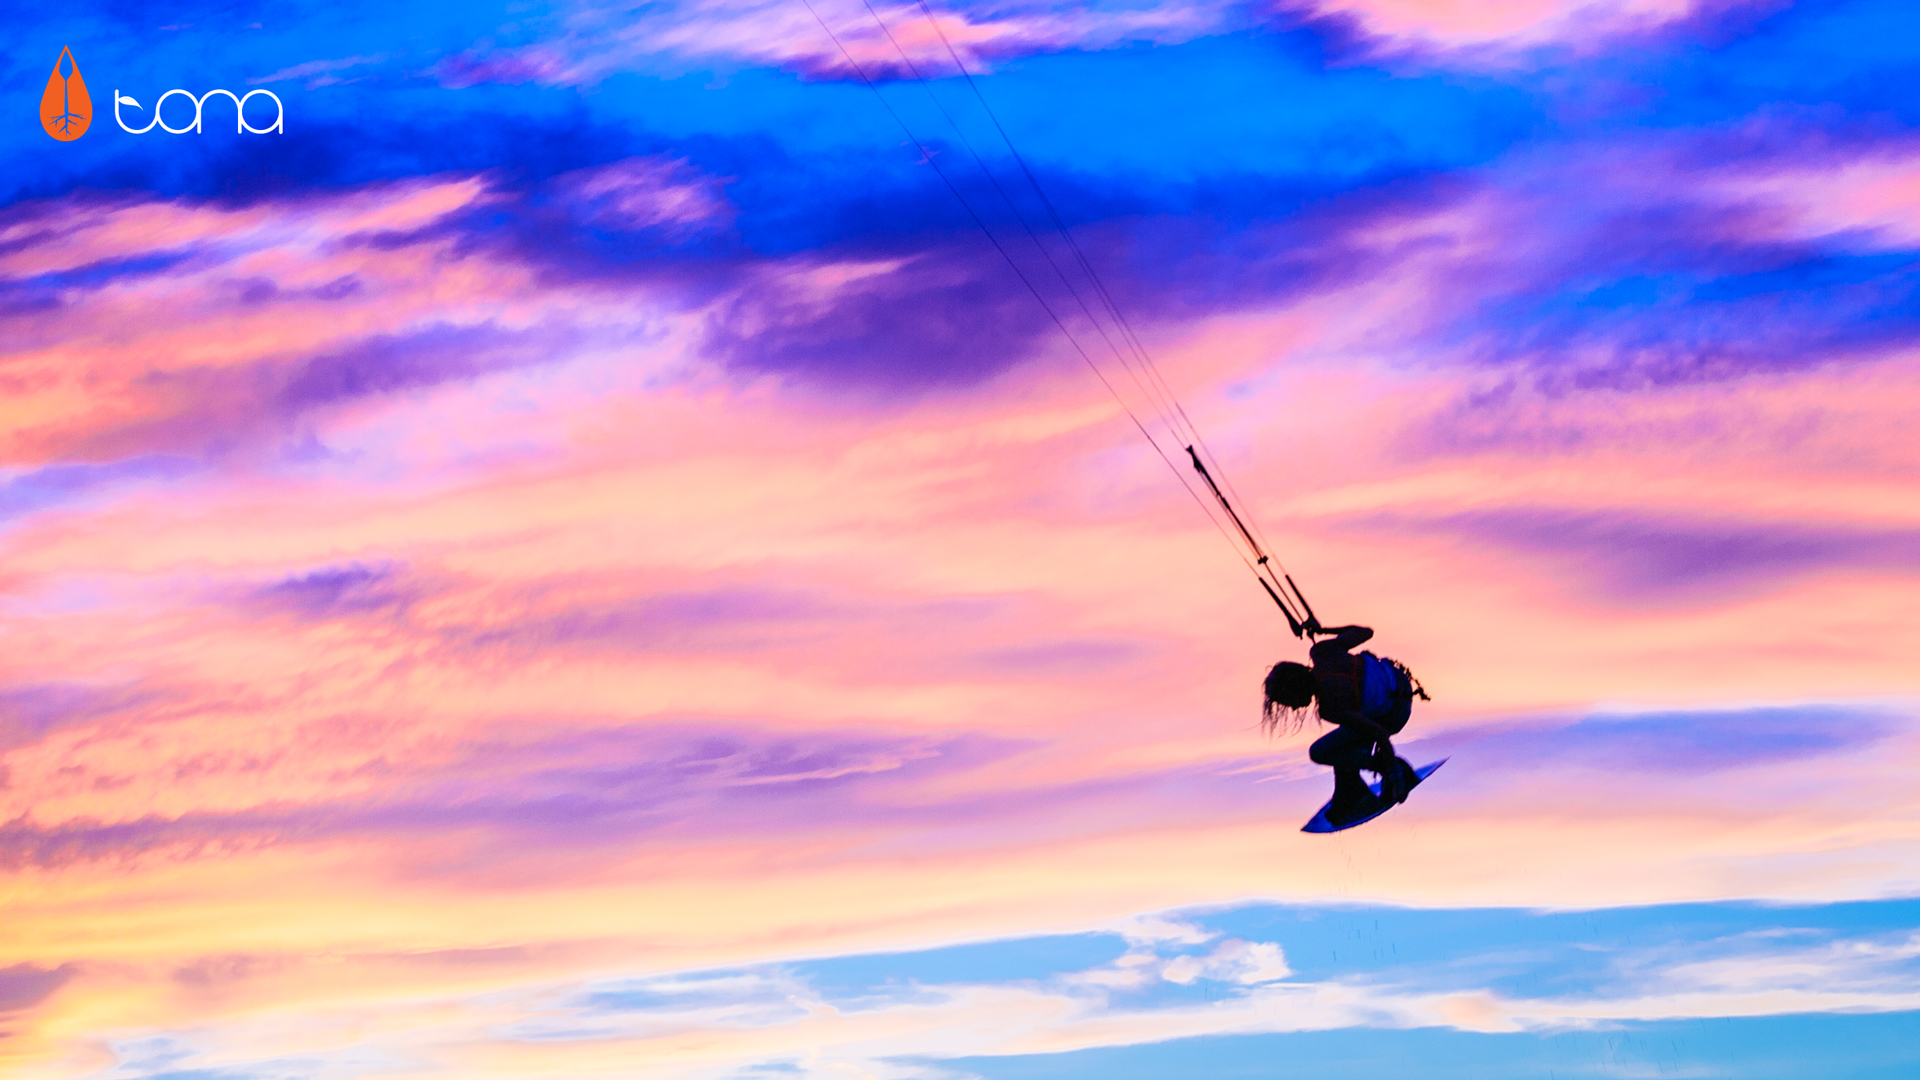 kitesurf wallpaper image - Indie grab at sunset with Tona Boards - kitesurfing - in resolution: High Definition - HD 16:9 1920 X 1080